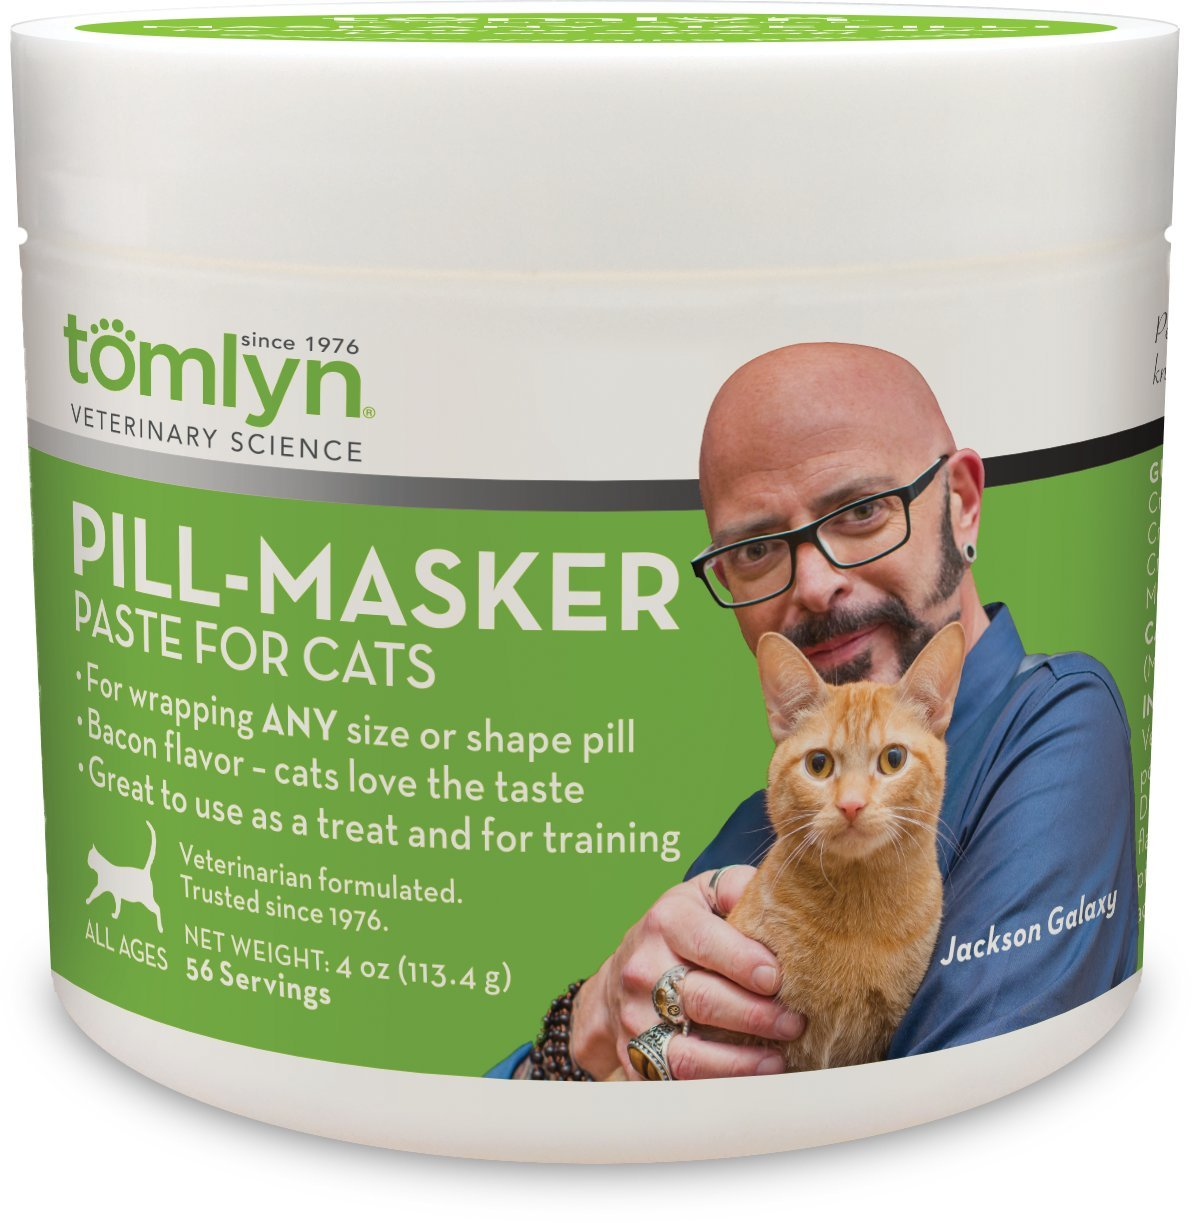 Tomlyn Pill-Masker Bacon-Flavored Paste for Cats, 4oz